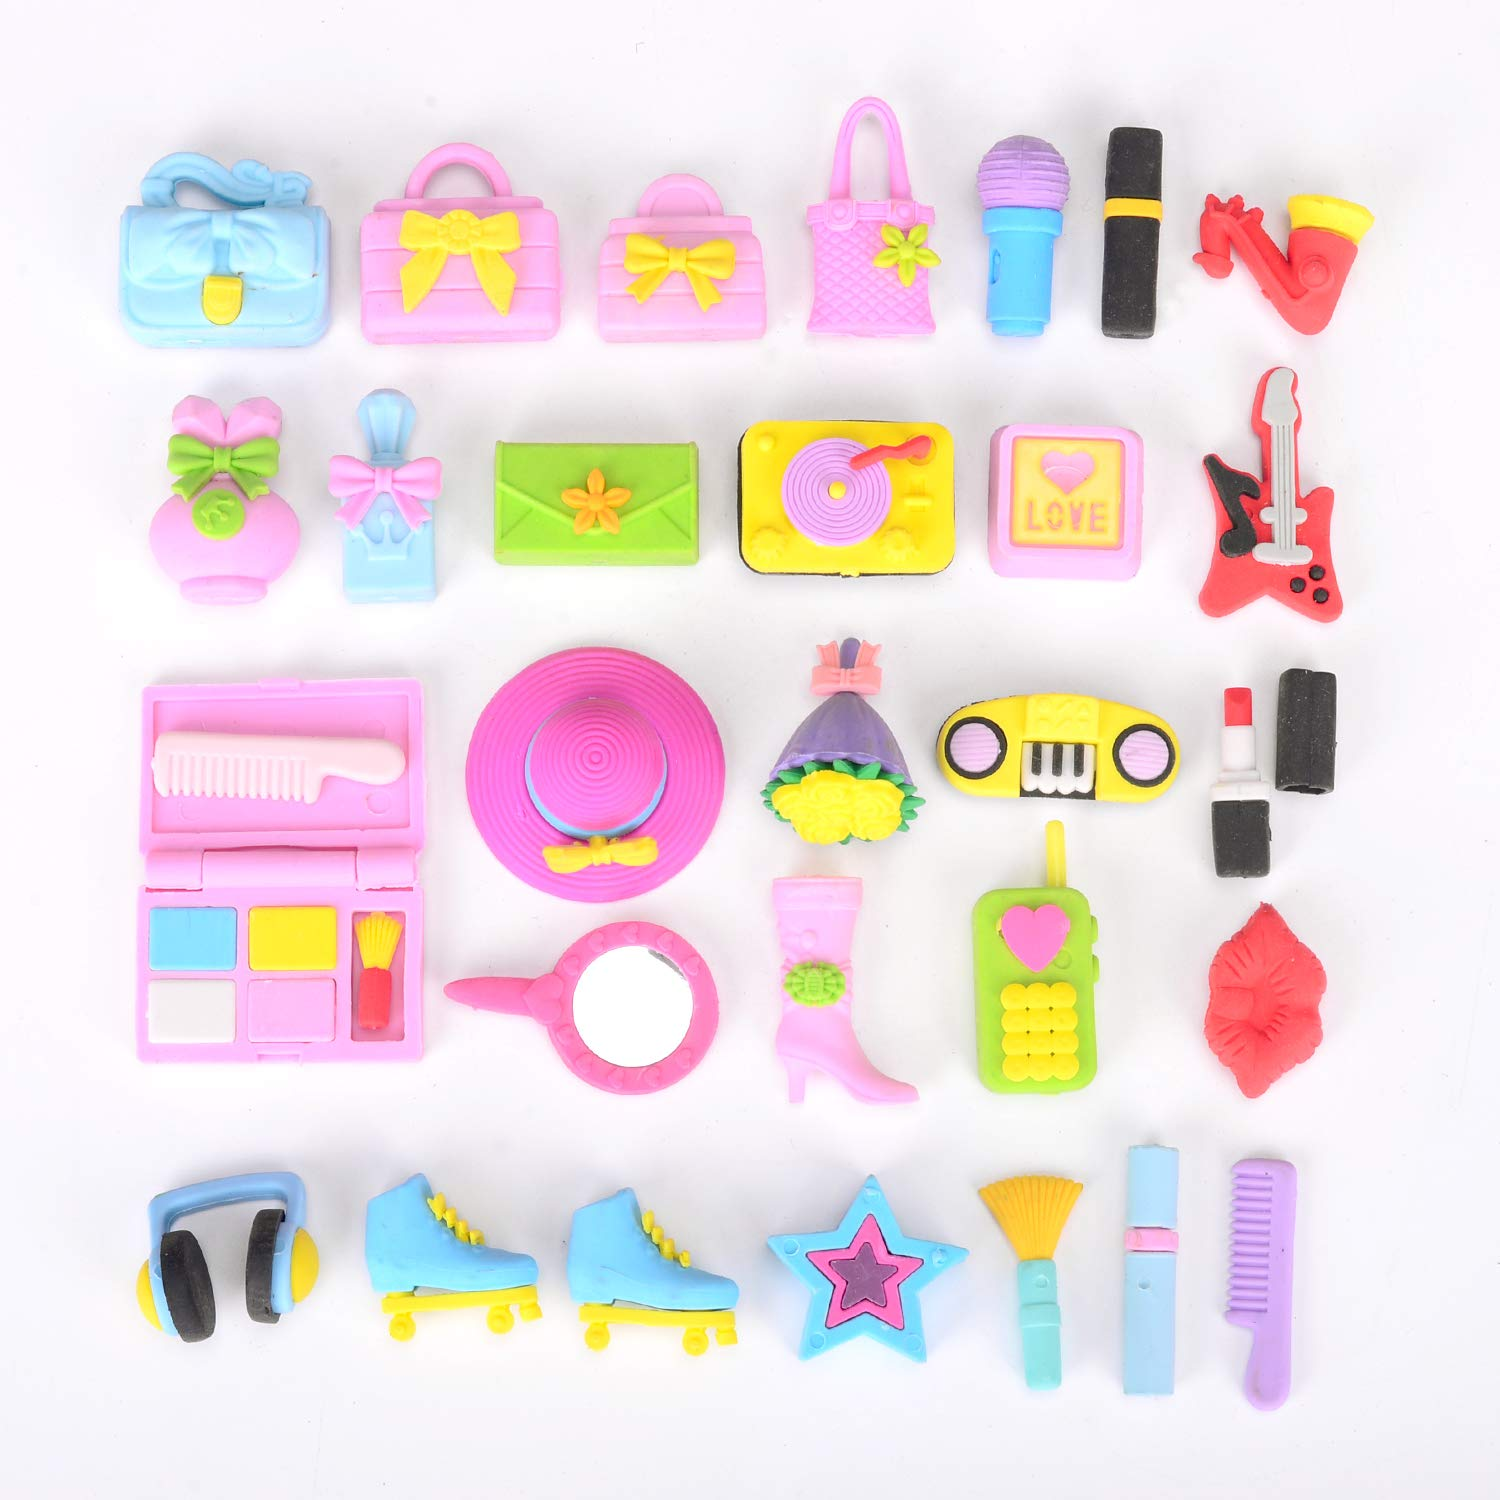 Games Prizes Carnivals and School Supplies soododo 30 PCS Girlsfavorite Puzzle Erasers for Kids Gift,Party Favors